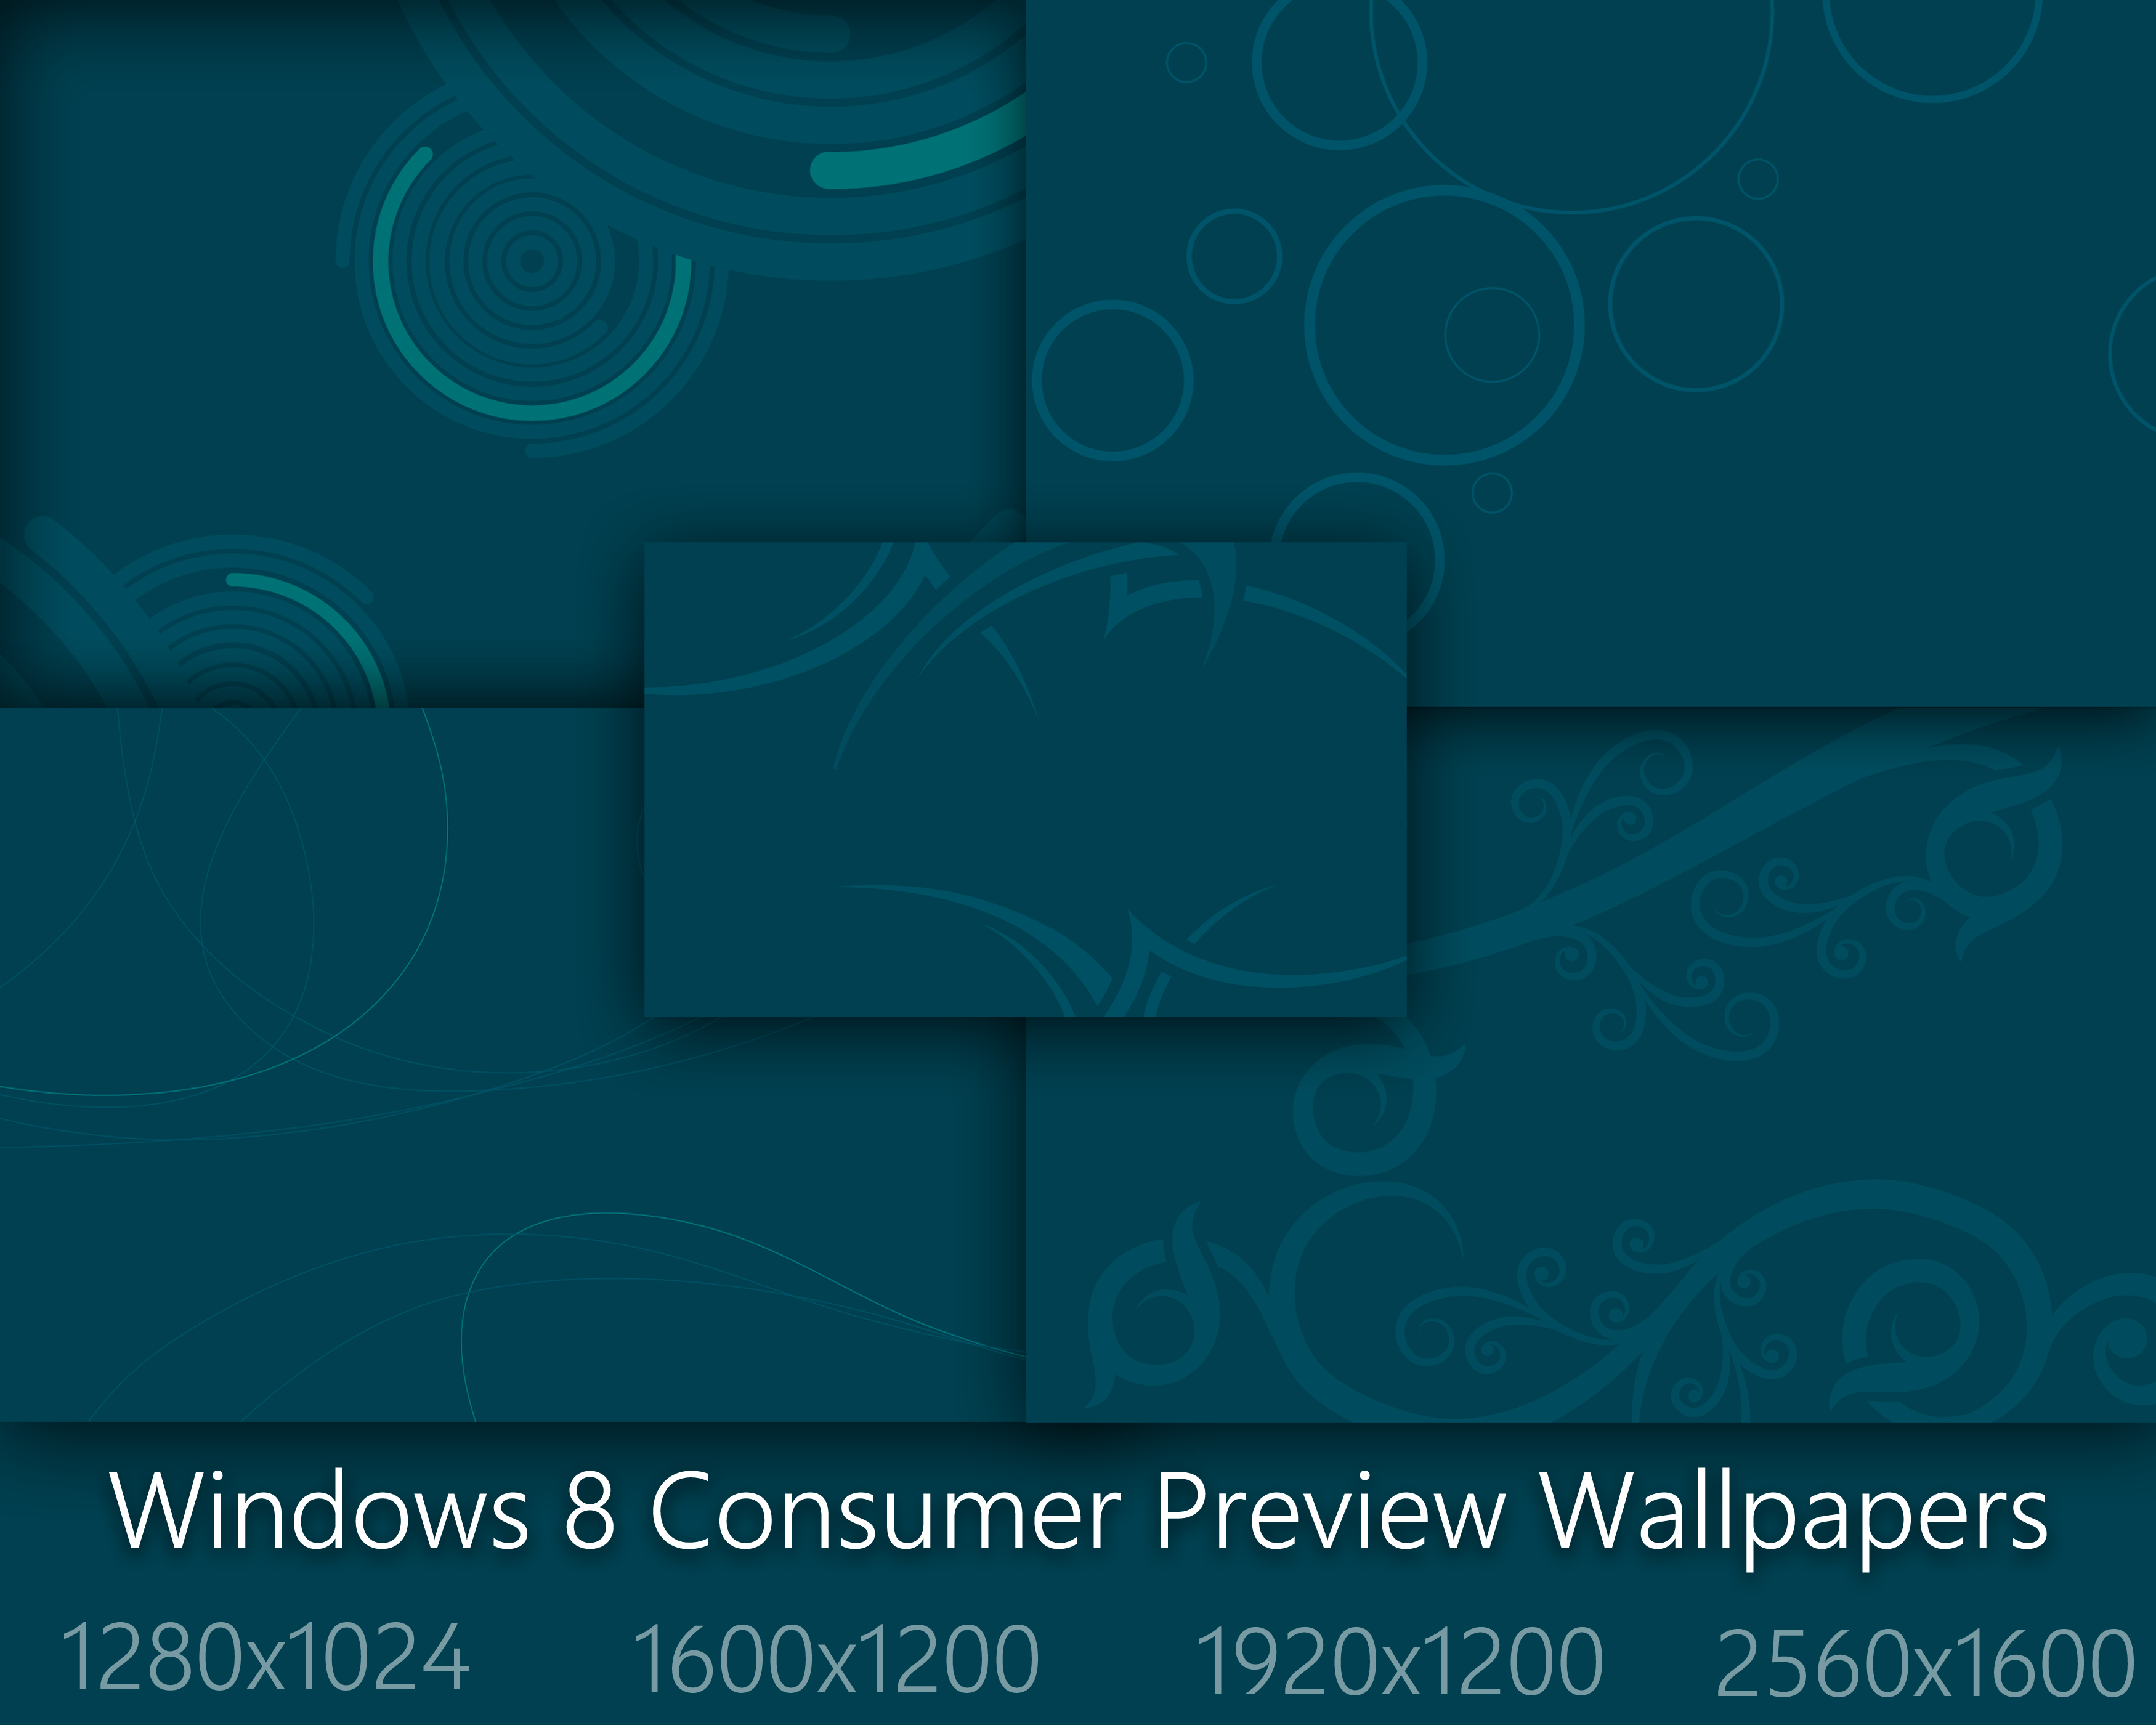 windows 8 consumer preview start blue wallpapersbrebenel-silviu